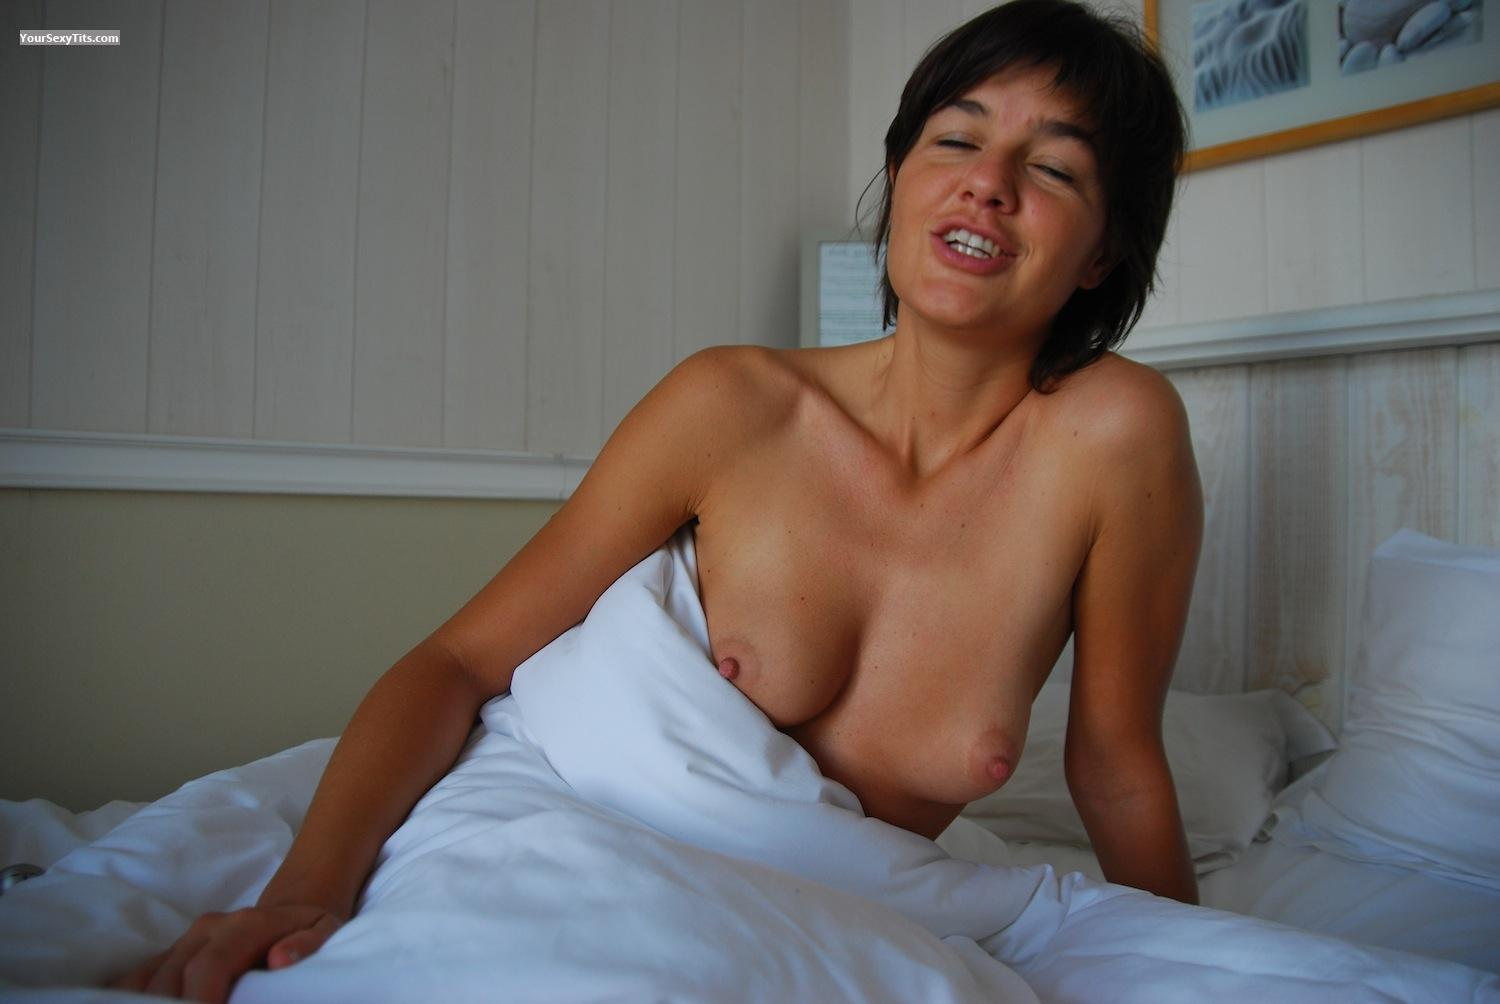 Tit Flash: Small Tits - Topless Jenny from United States